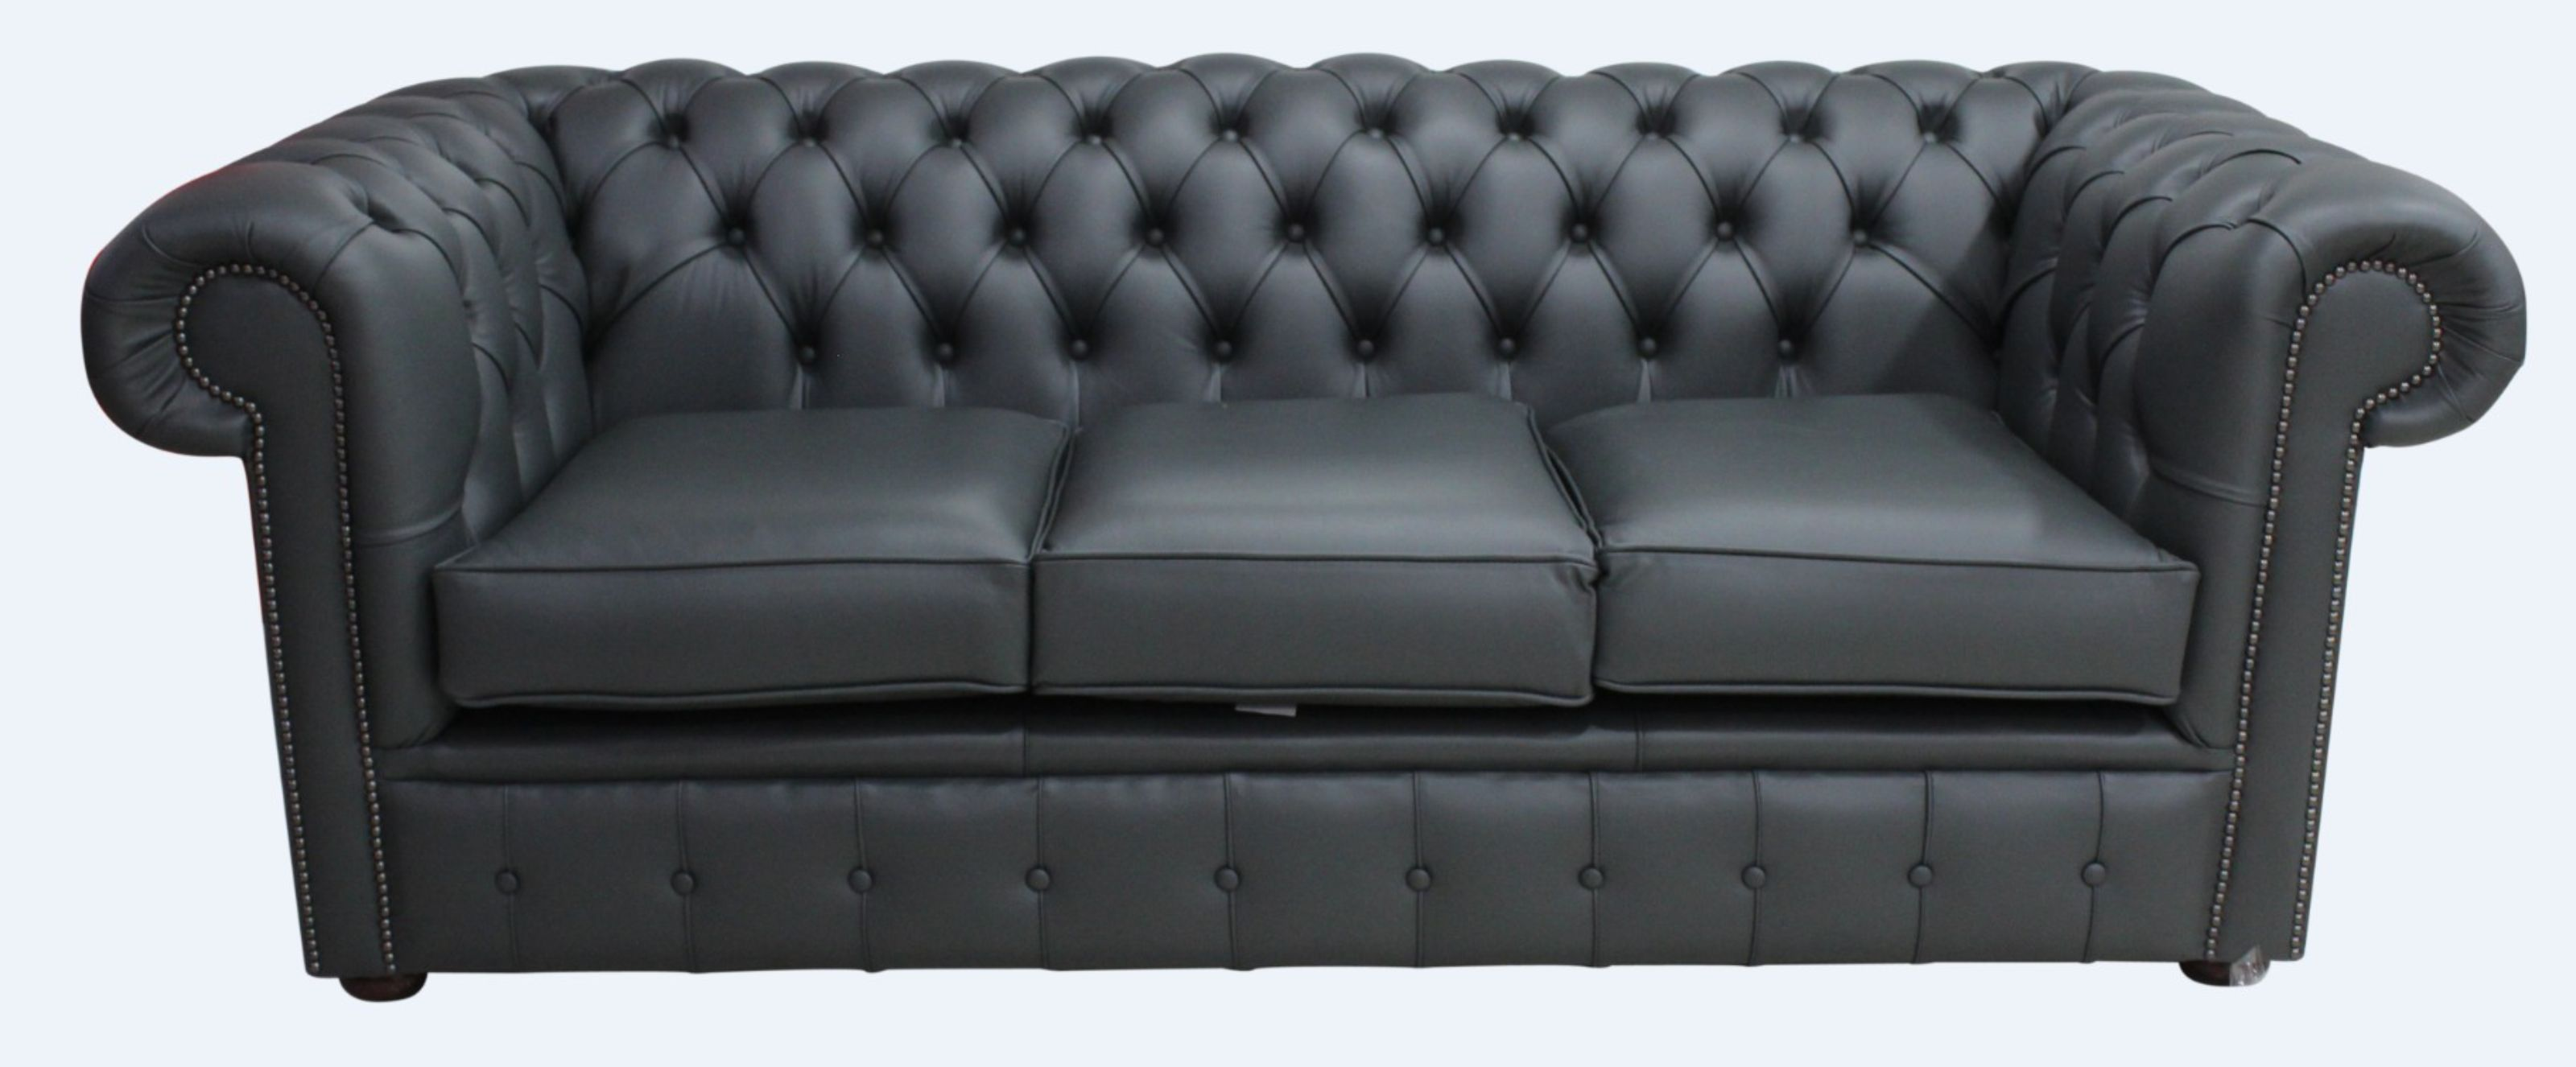 Incredible Chesterfield 3 Seater Sofa Settee Charcoal Grey Leather Sofa Offer Pdpeps Interior Chair Design Pdpepsorg